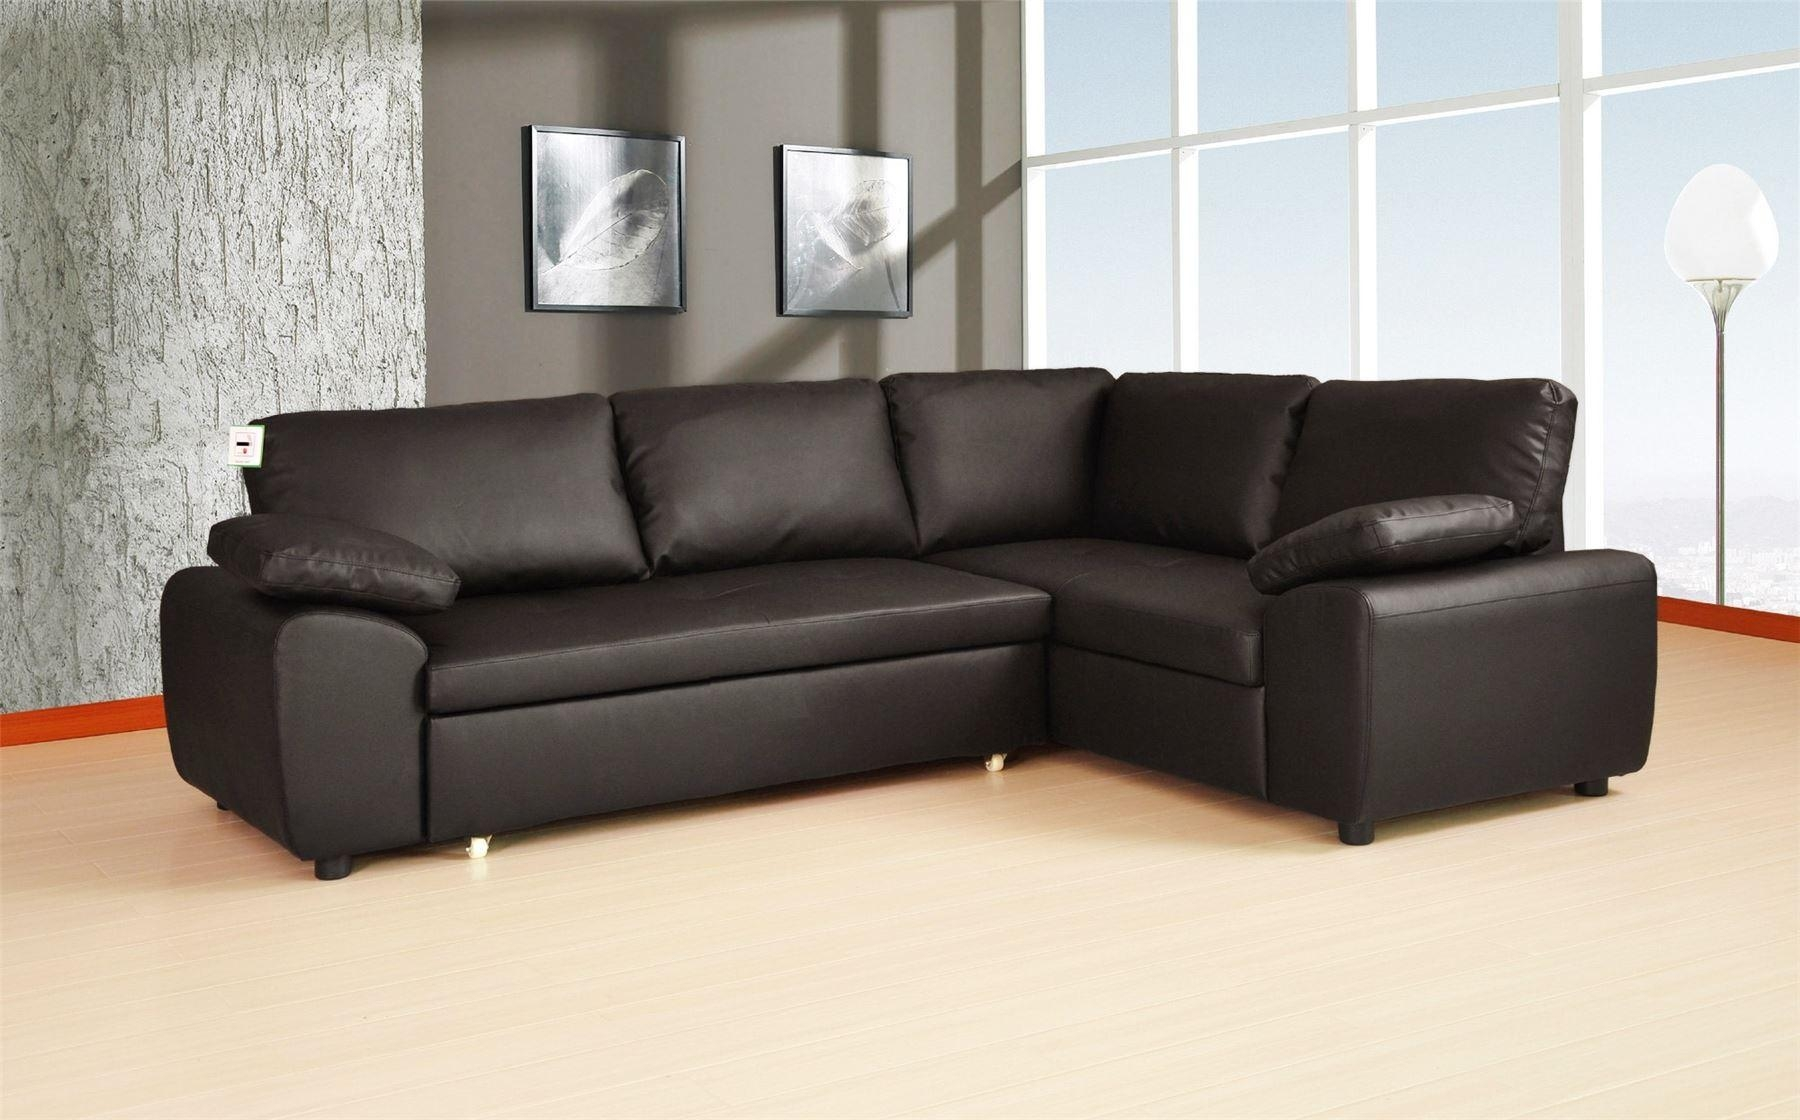 21 best ideas small brown leather corner sofas sofa ideas. Black Bedroom Furniture Sets. Home Design Ideas